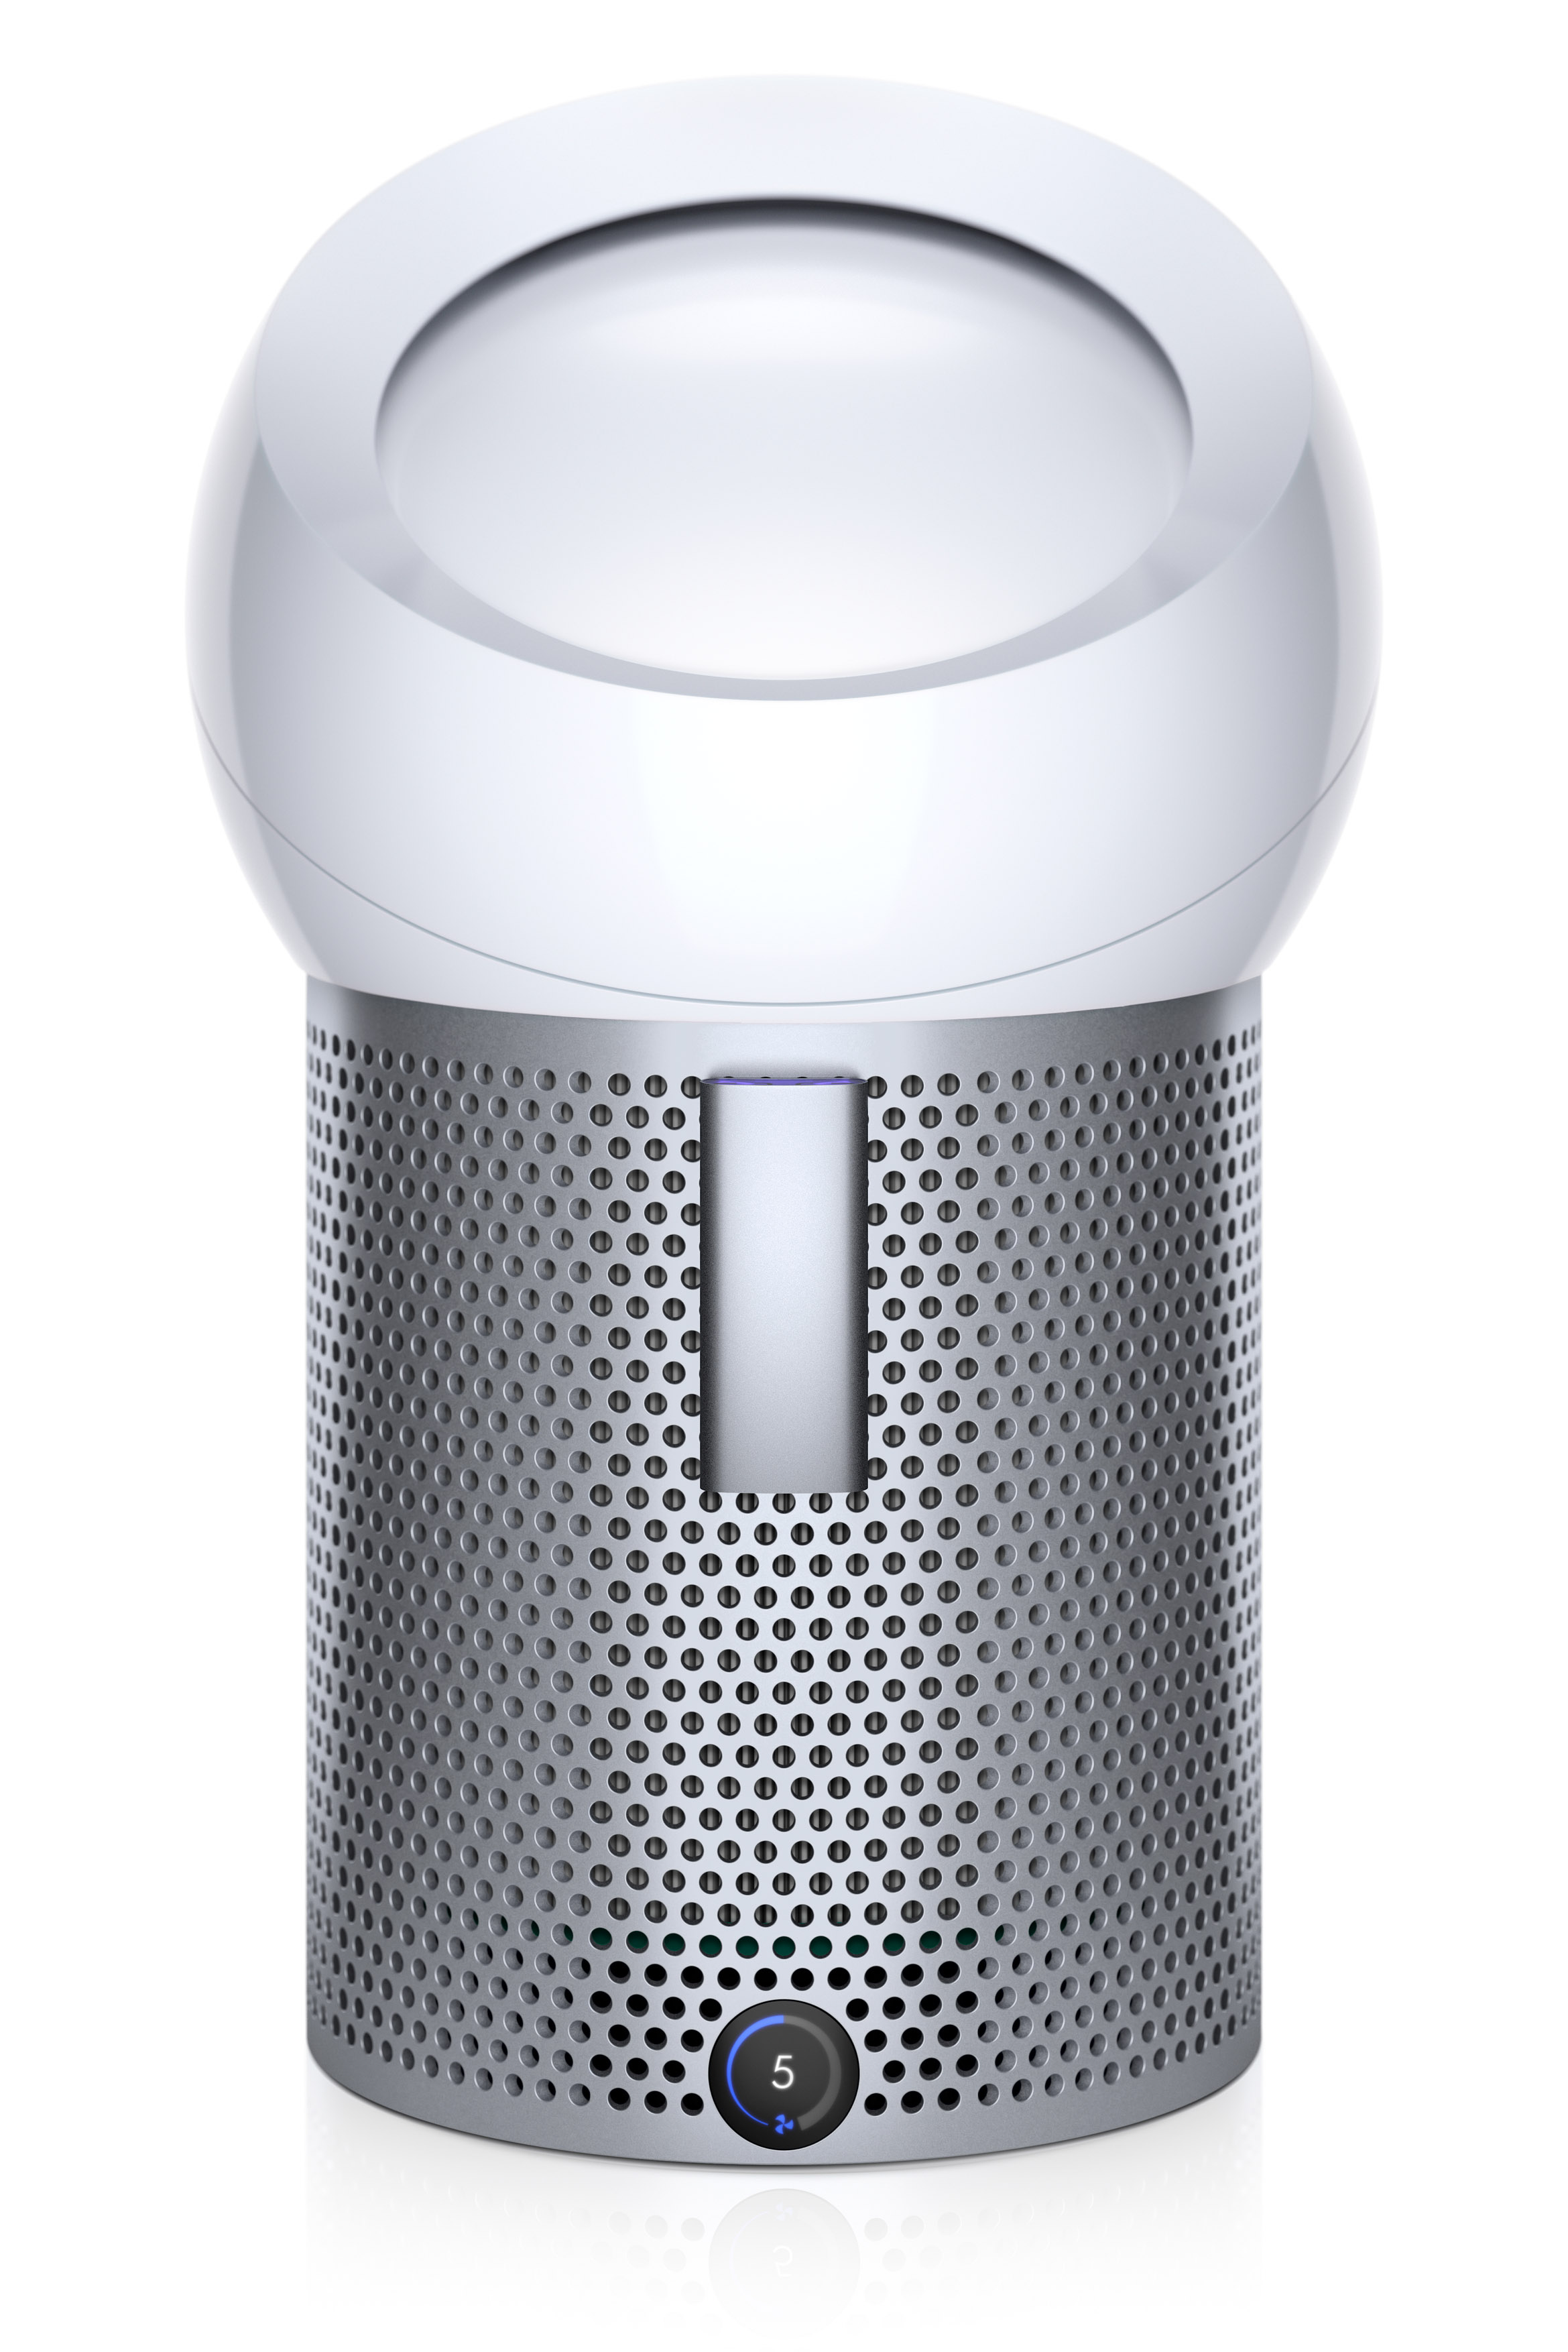 3 Quick Guides in choosing the right Air Purifier - Alvinology